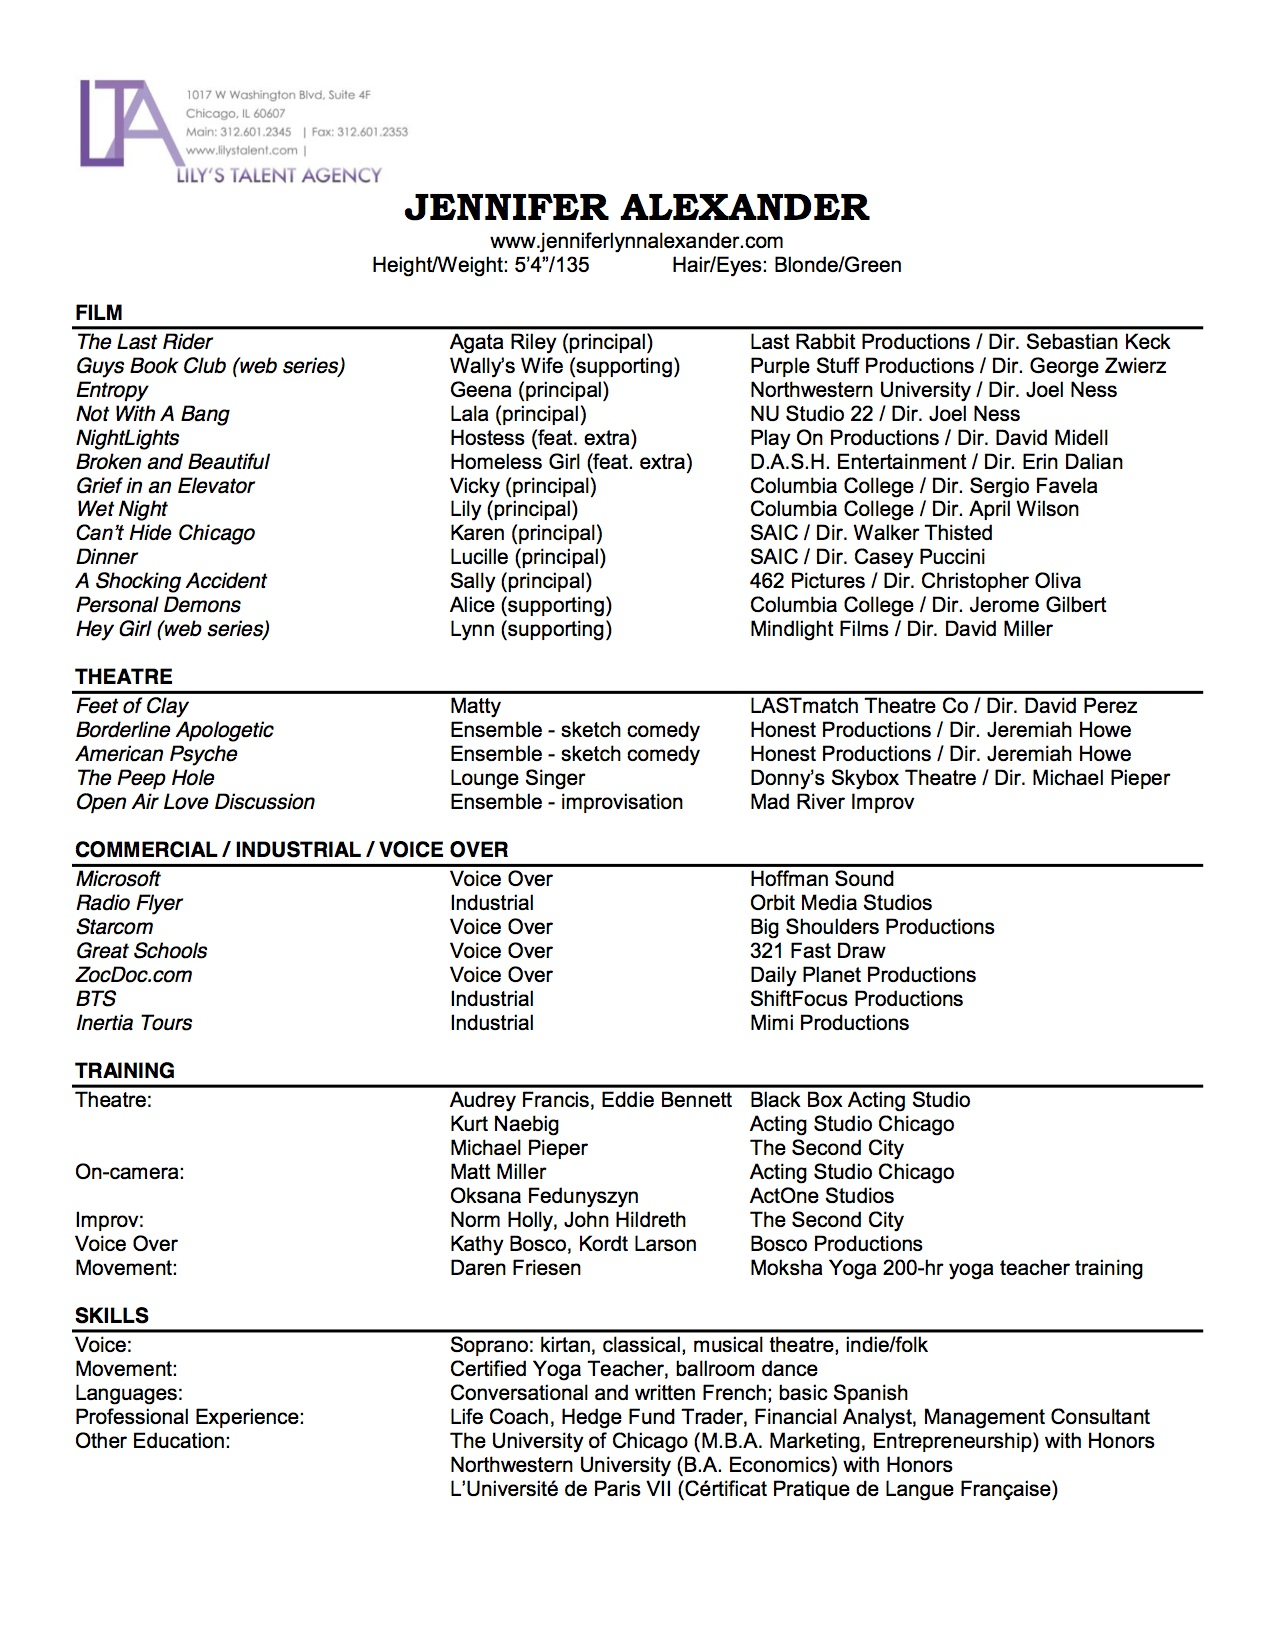 Resume | Jennifer Alexander ~ Actress/Voice Artist